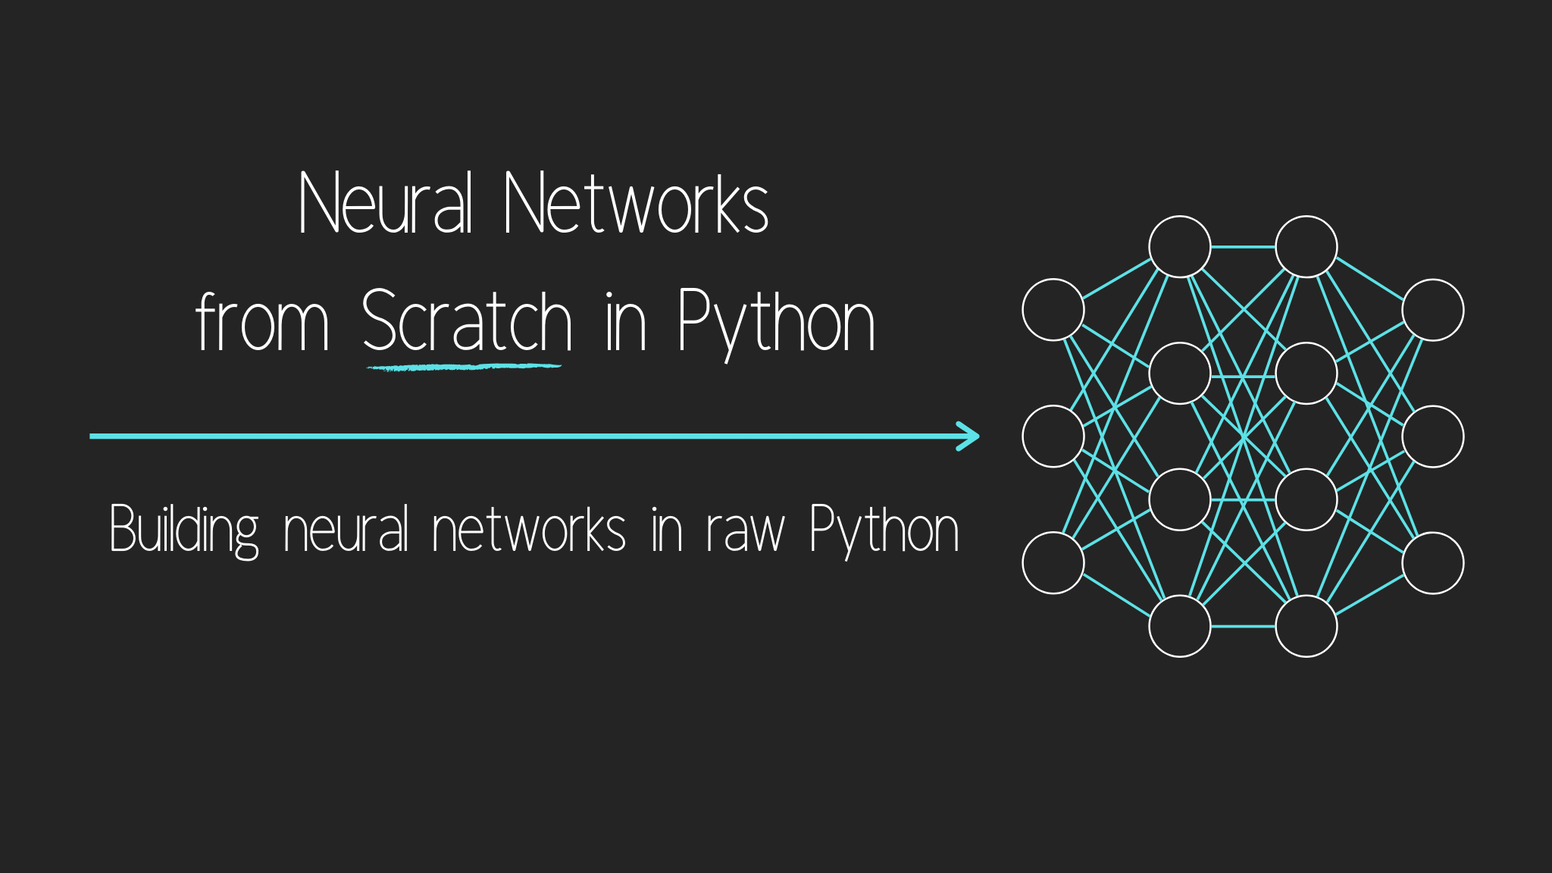 Learn the inner-workings of and the math behind deep learning by creating, training, and using neural networks from scratch in Python.